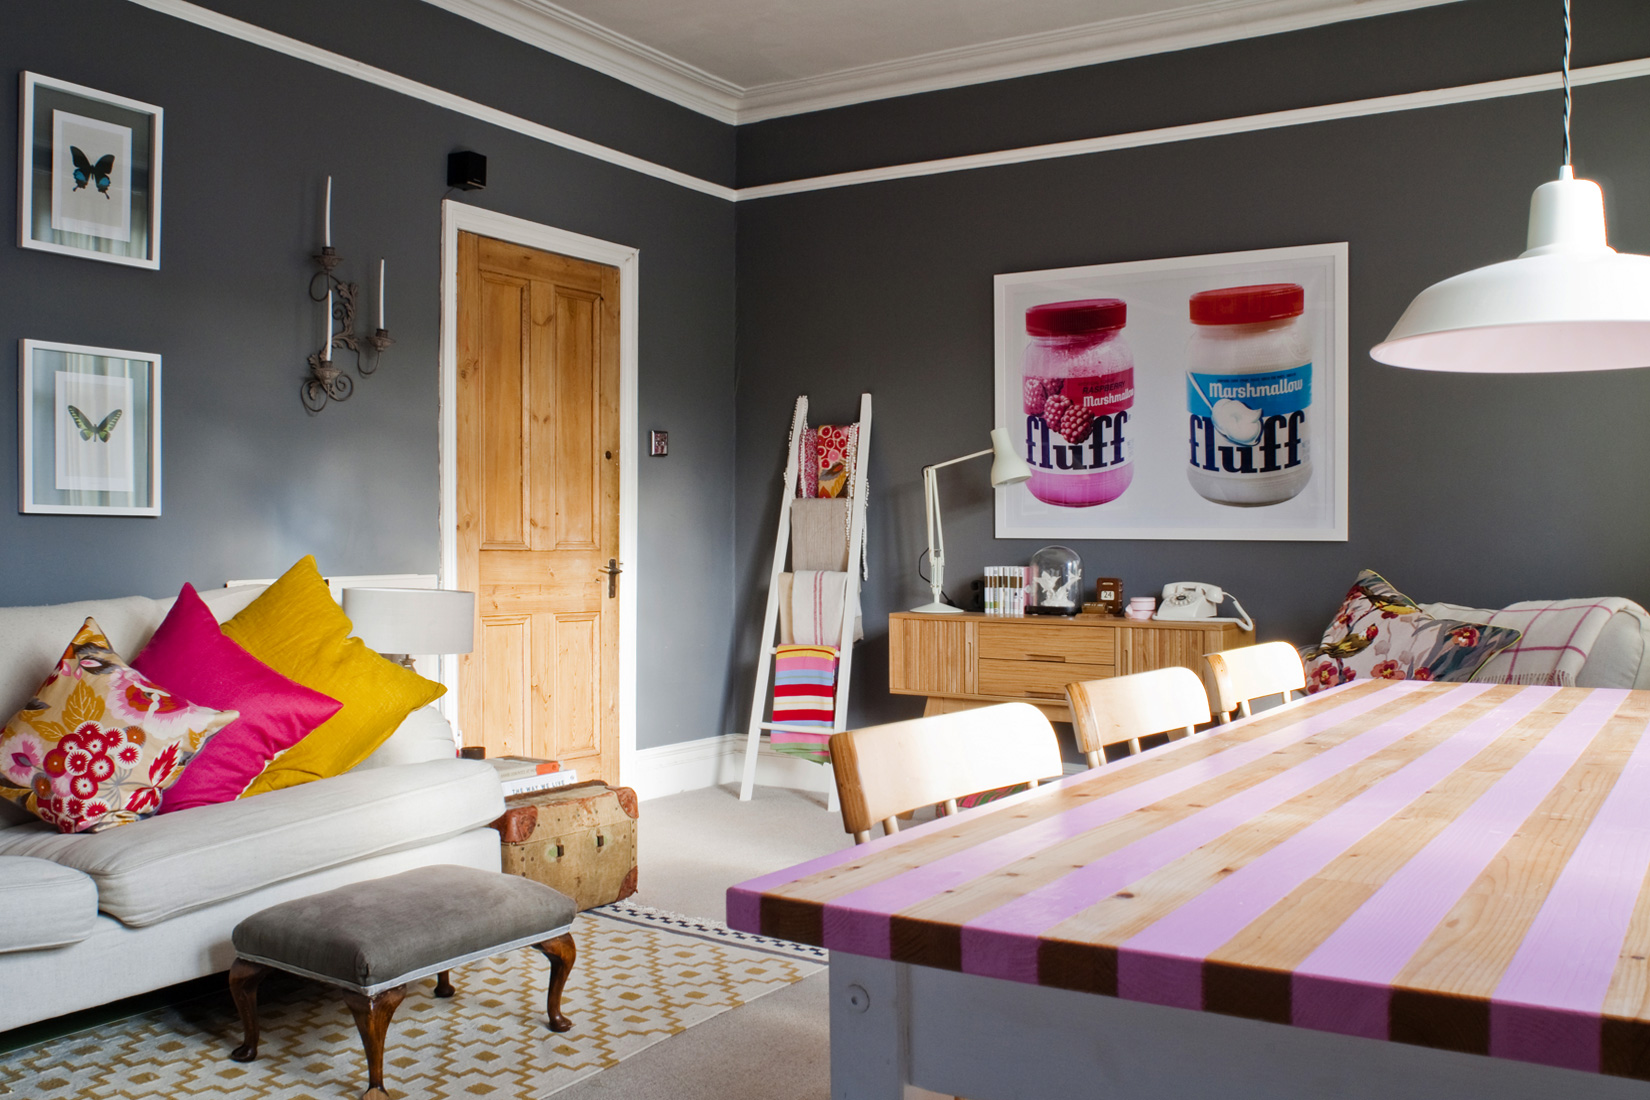 Cool-interior-design-in-eclectic-style-01